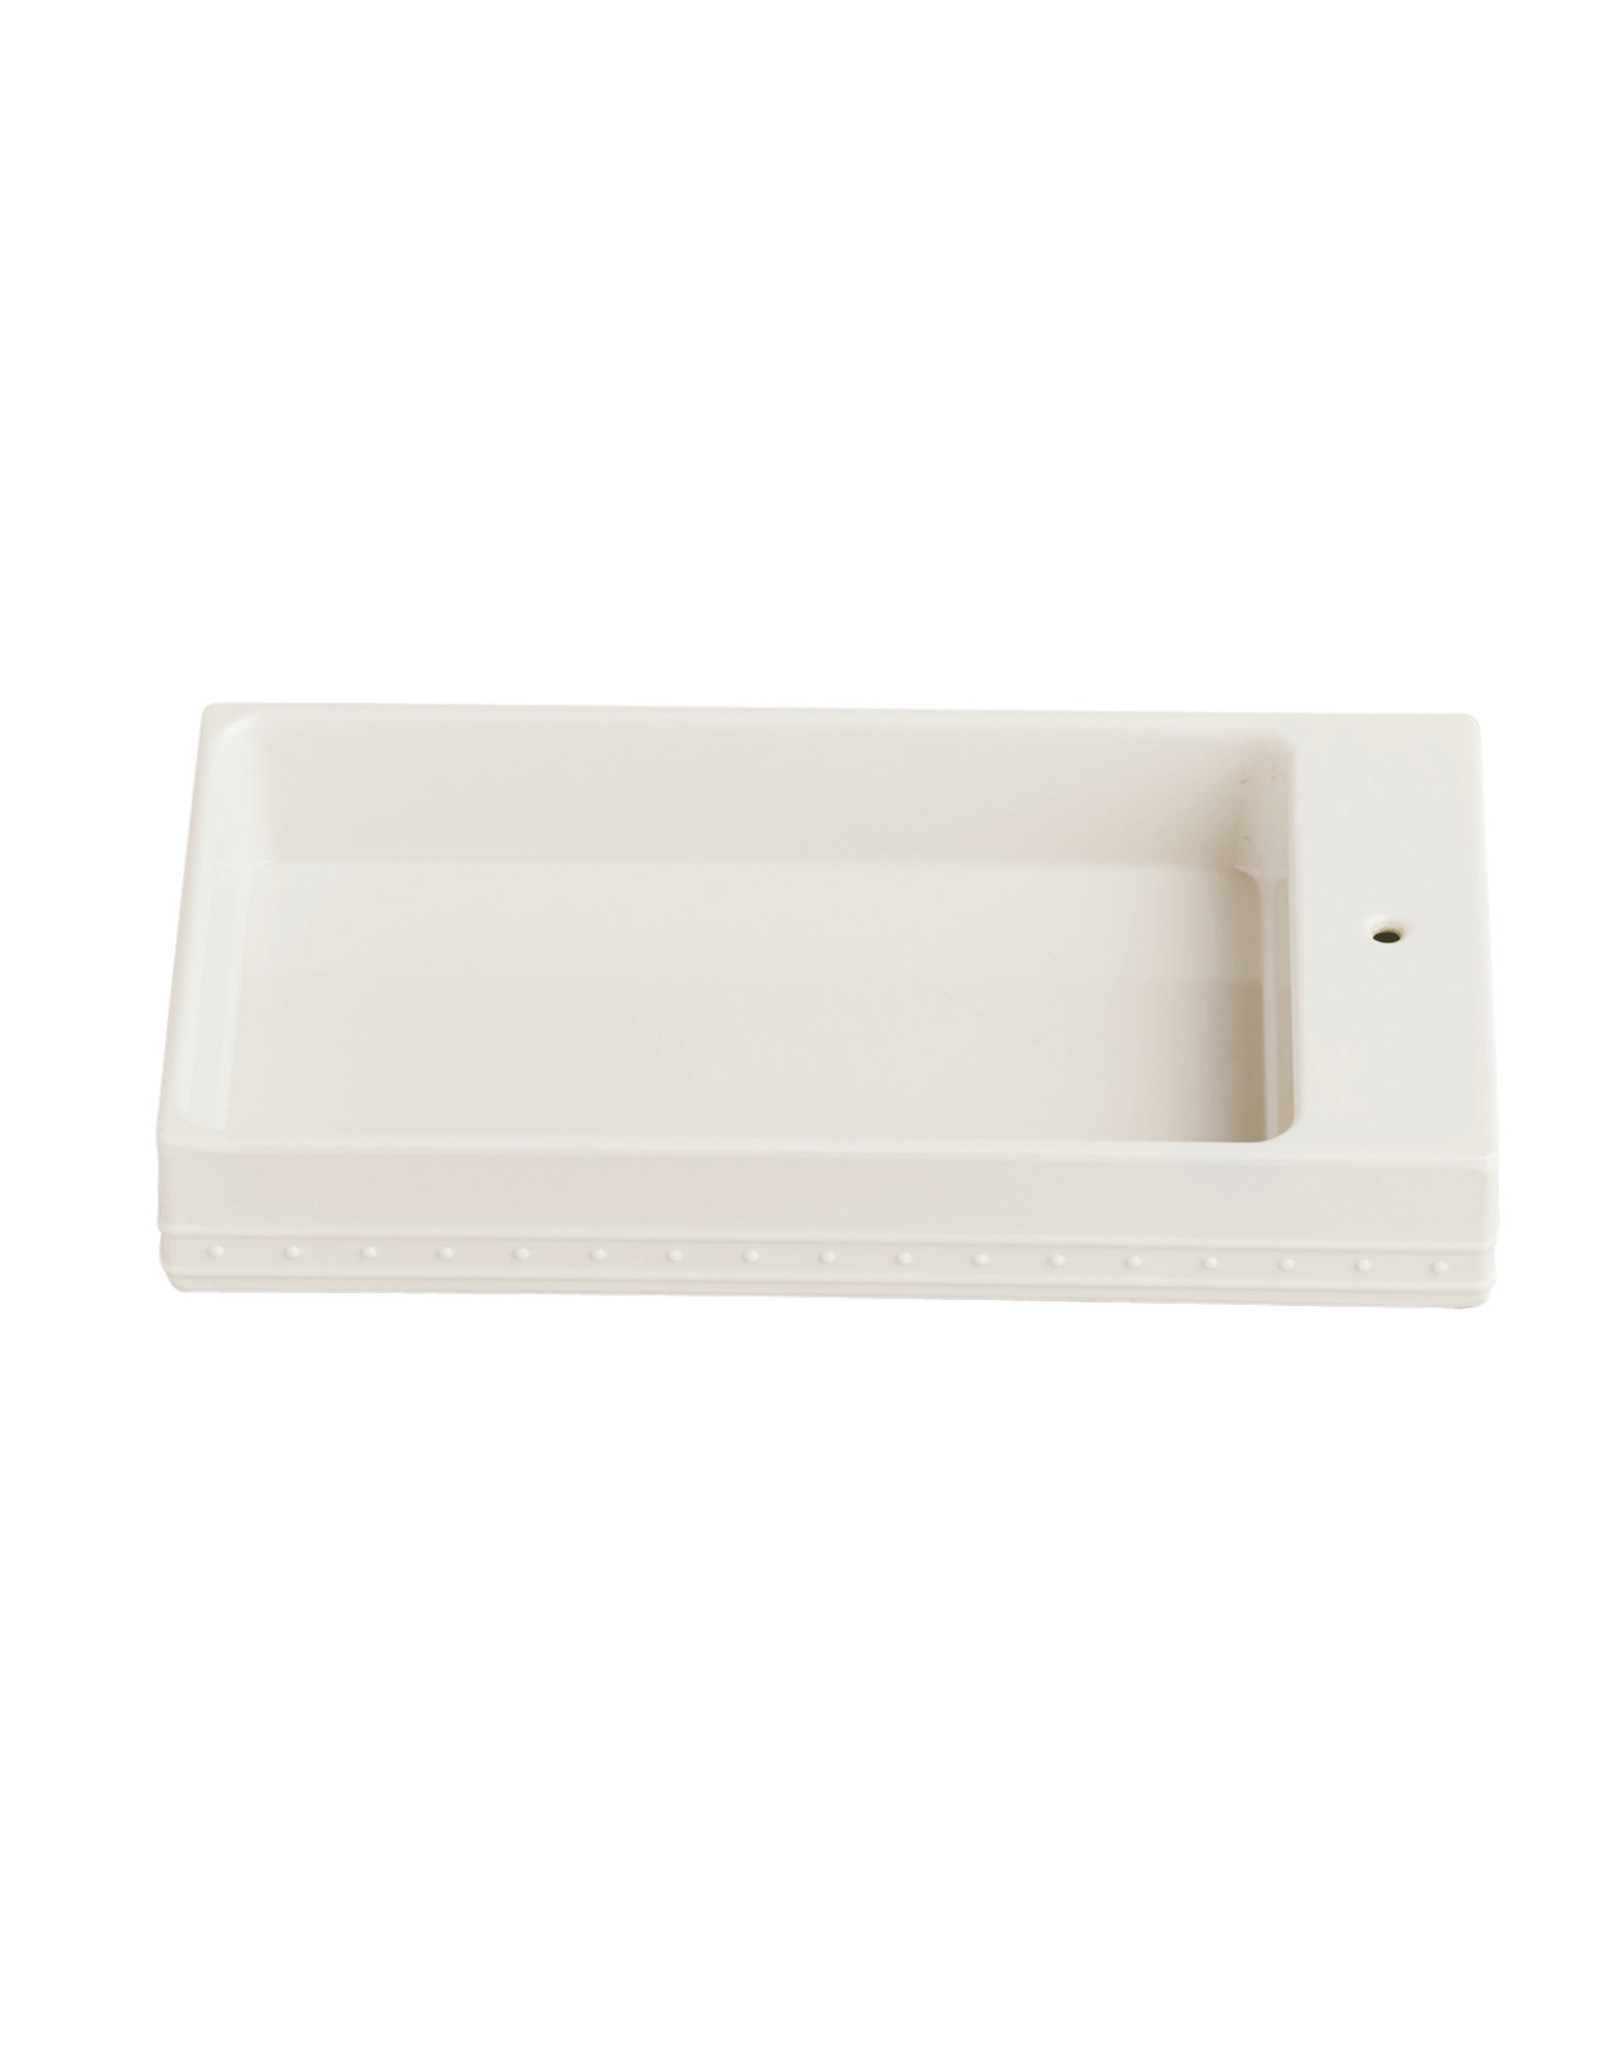 Nora Fleming Guest Towel Holder, Melamine